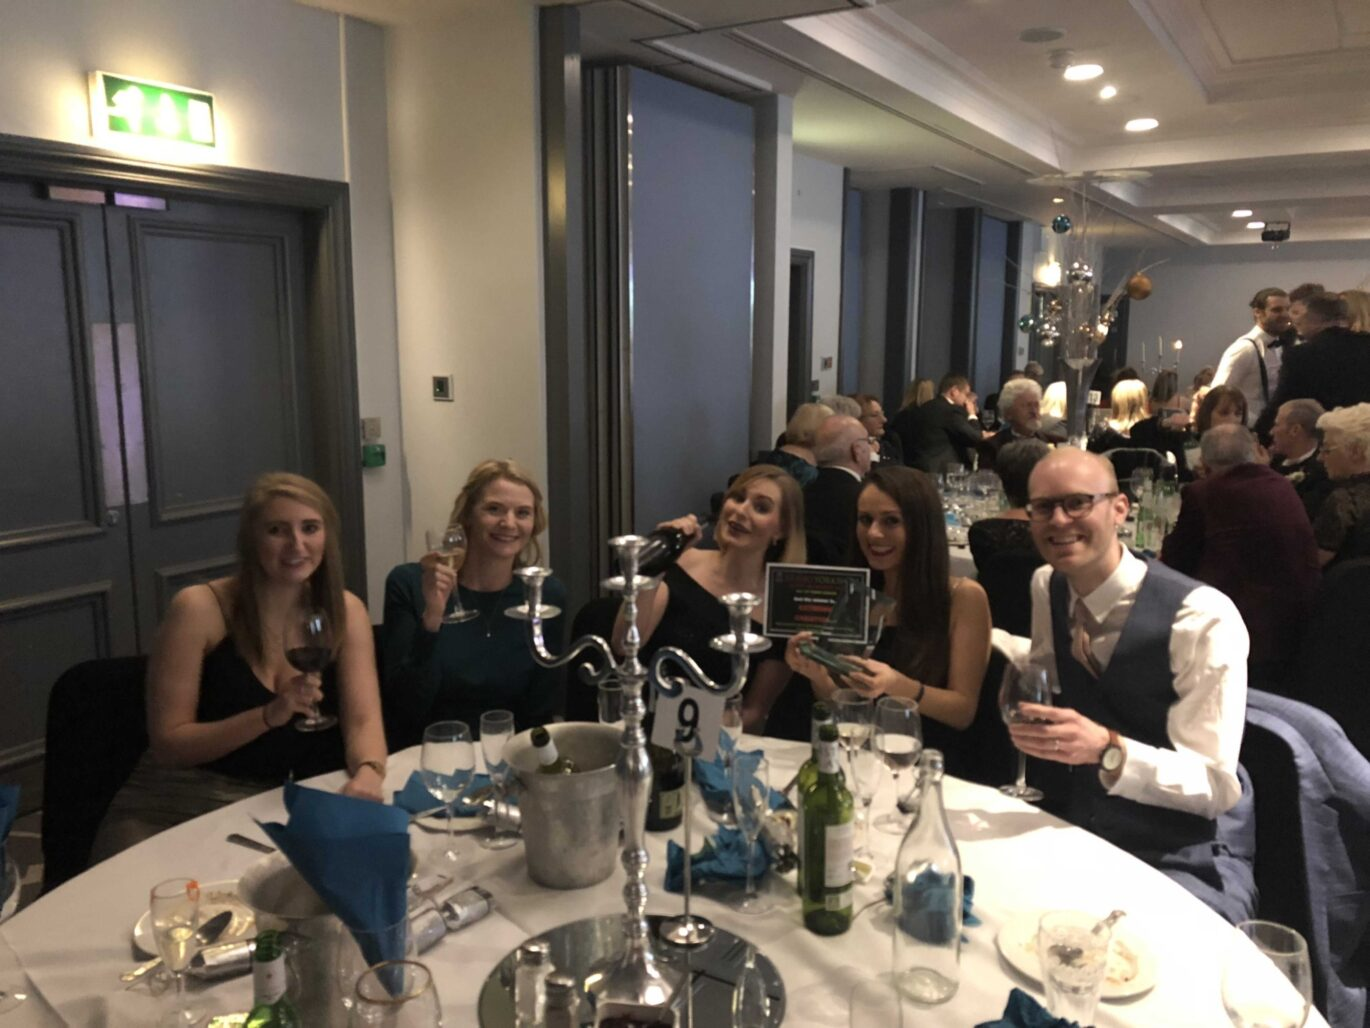 A selection of Team Extreme basking in awards success.